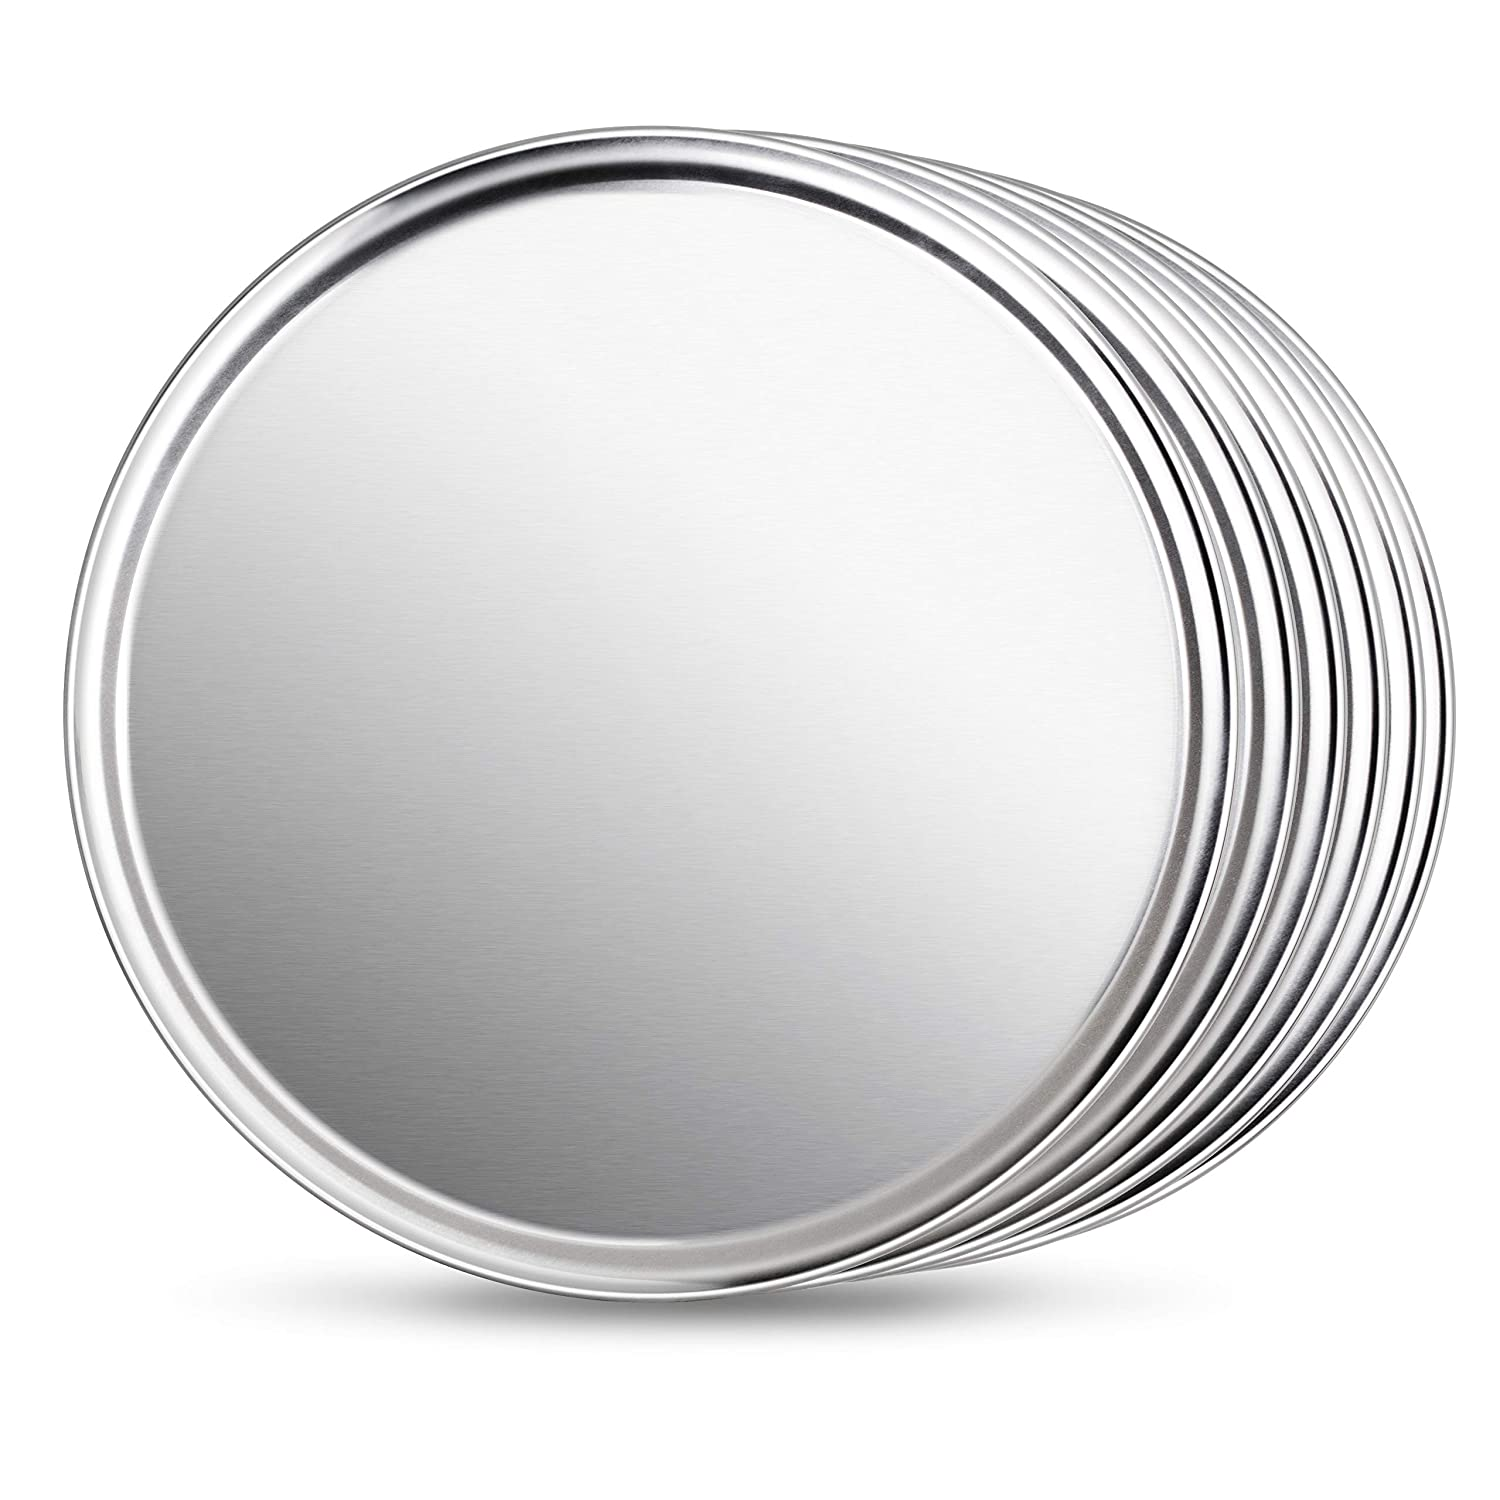 New Star Foodservice 50912 Pizza Pan Tray, Wide Rim, Aluminum, 18 Inch, Pack of 6